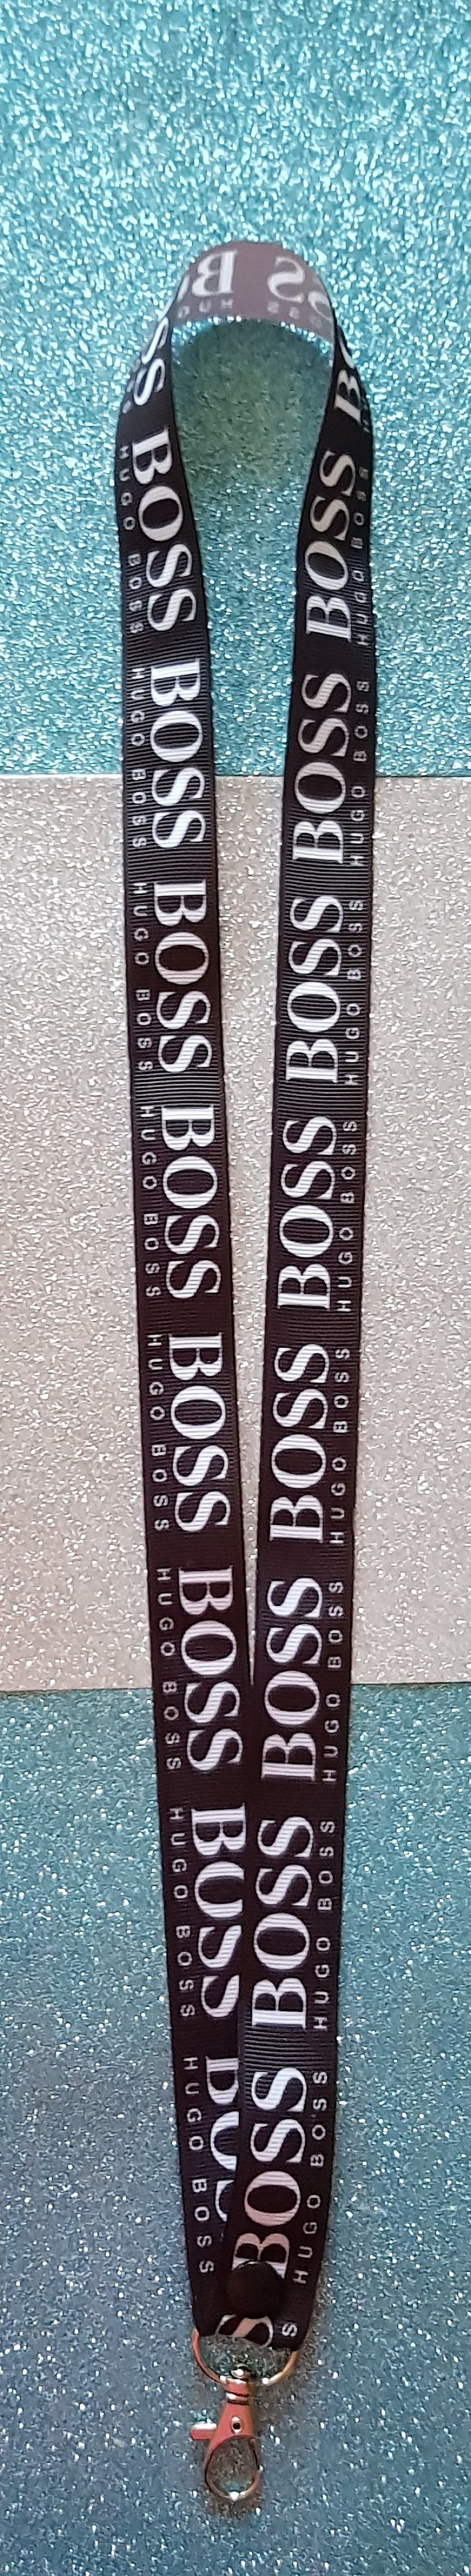 Hugo Boss Lanyard Id badge holder